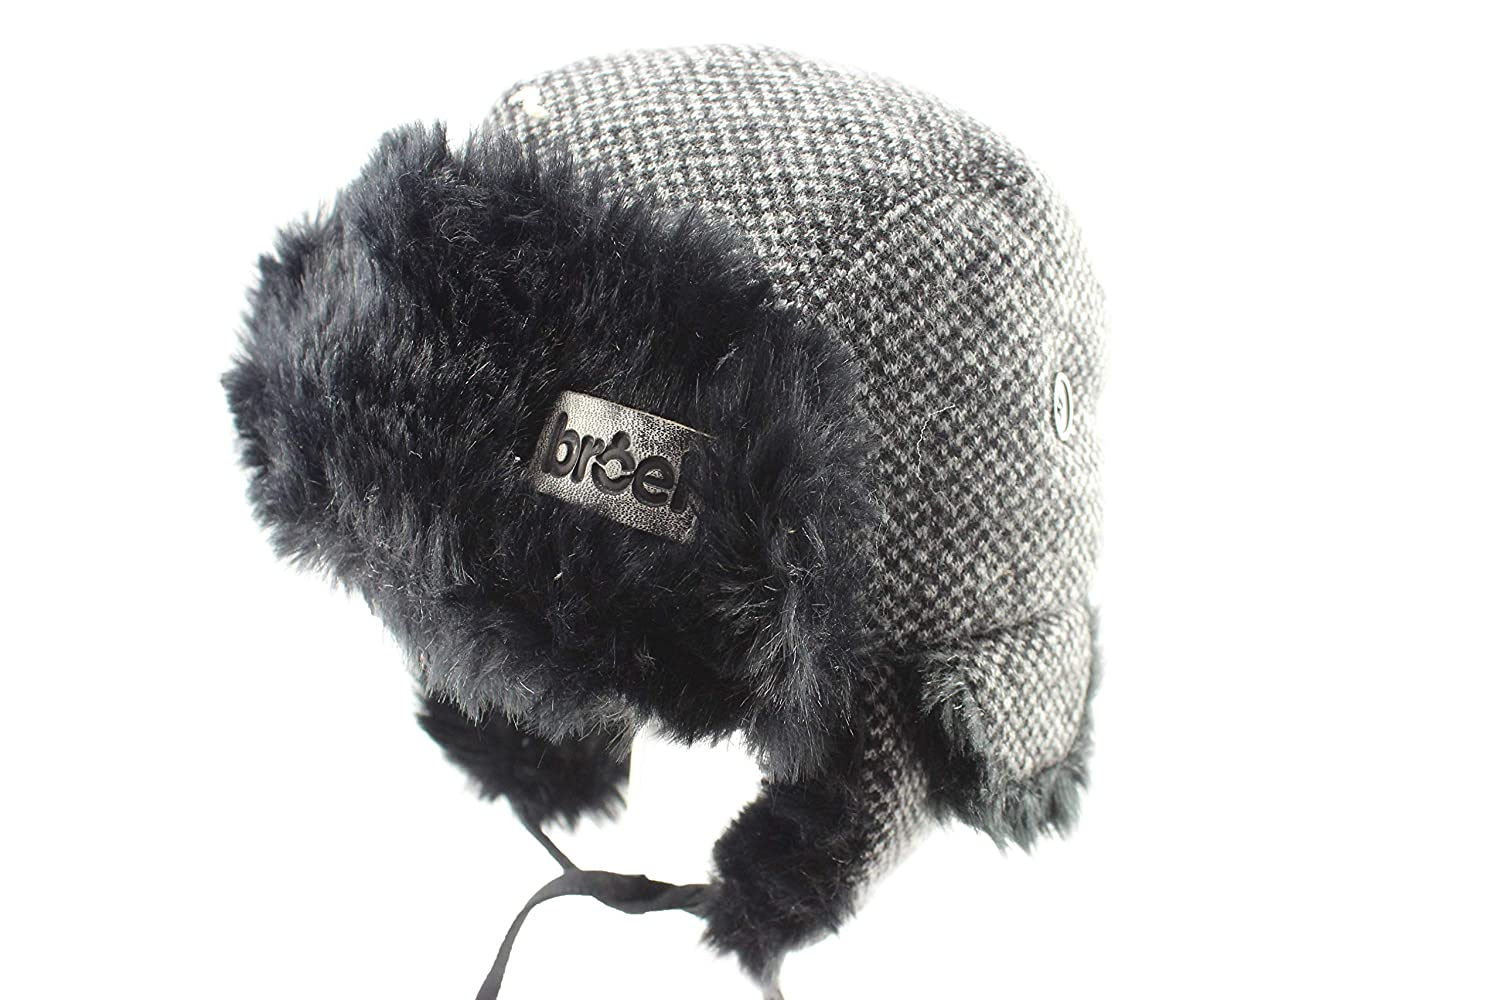 Broel Paco Boys Warm Ear Flap Winter Hat